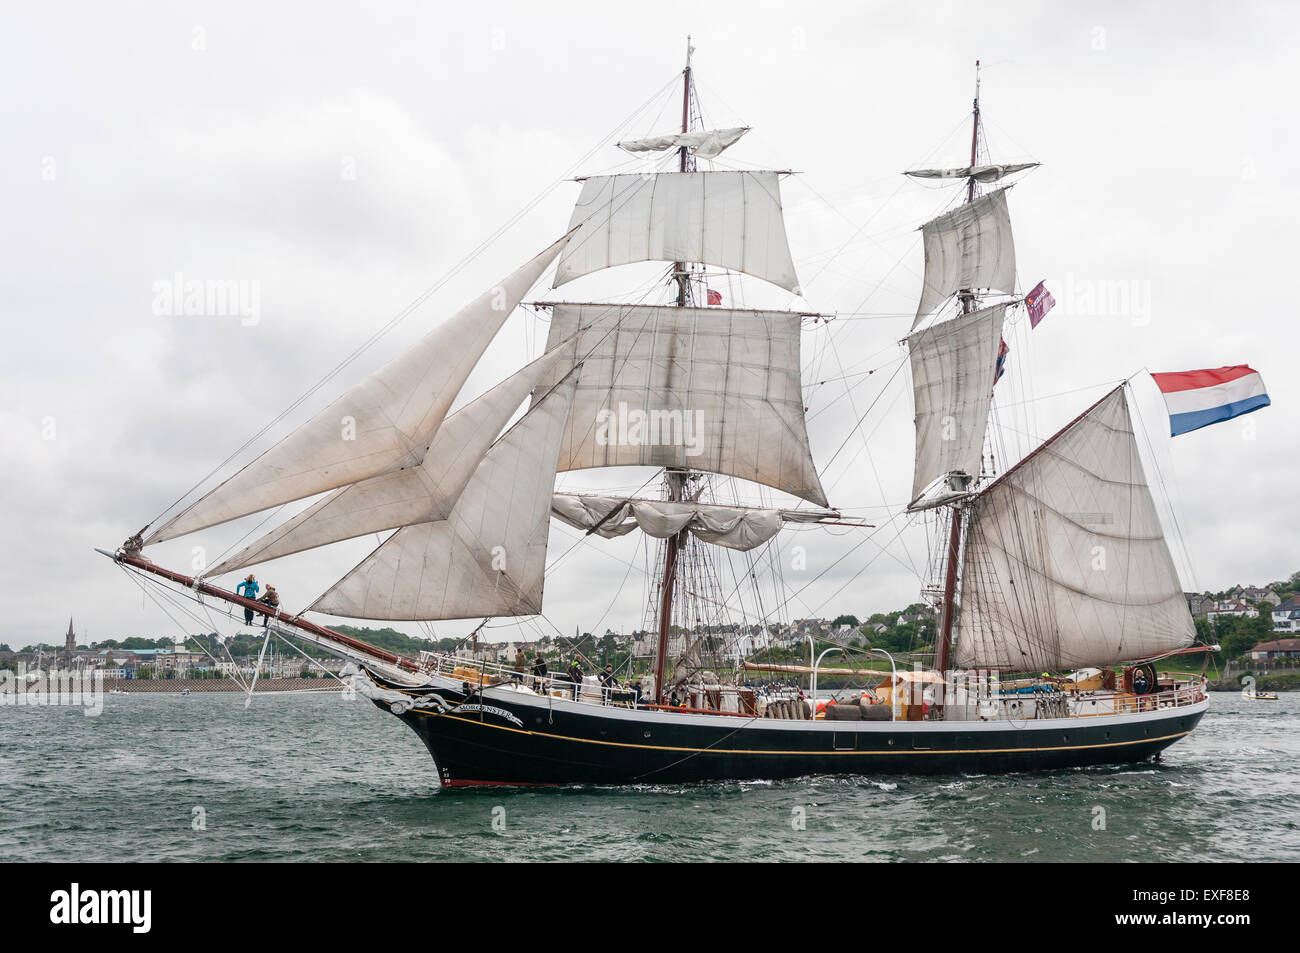 Class B tall ship, Morgenster, leaves Belfast during the start of the 2015 Tall Ships race - Stock Image